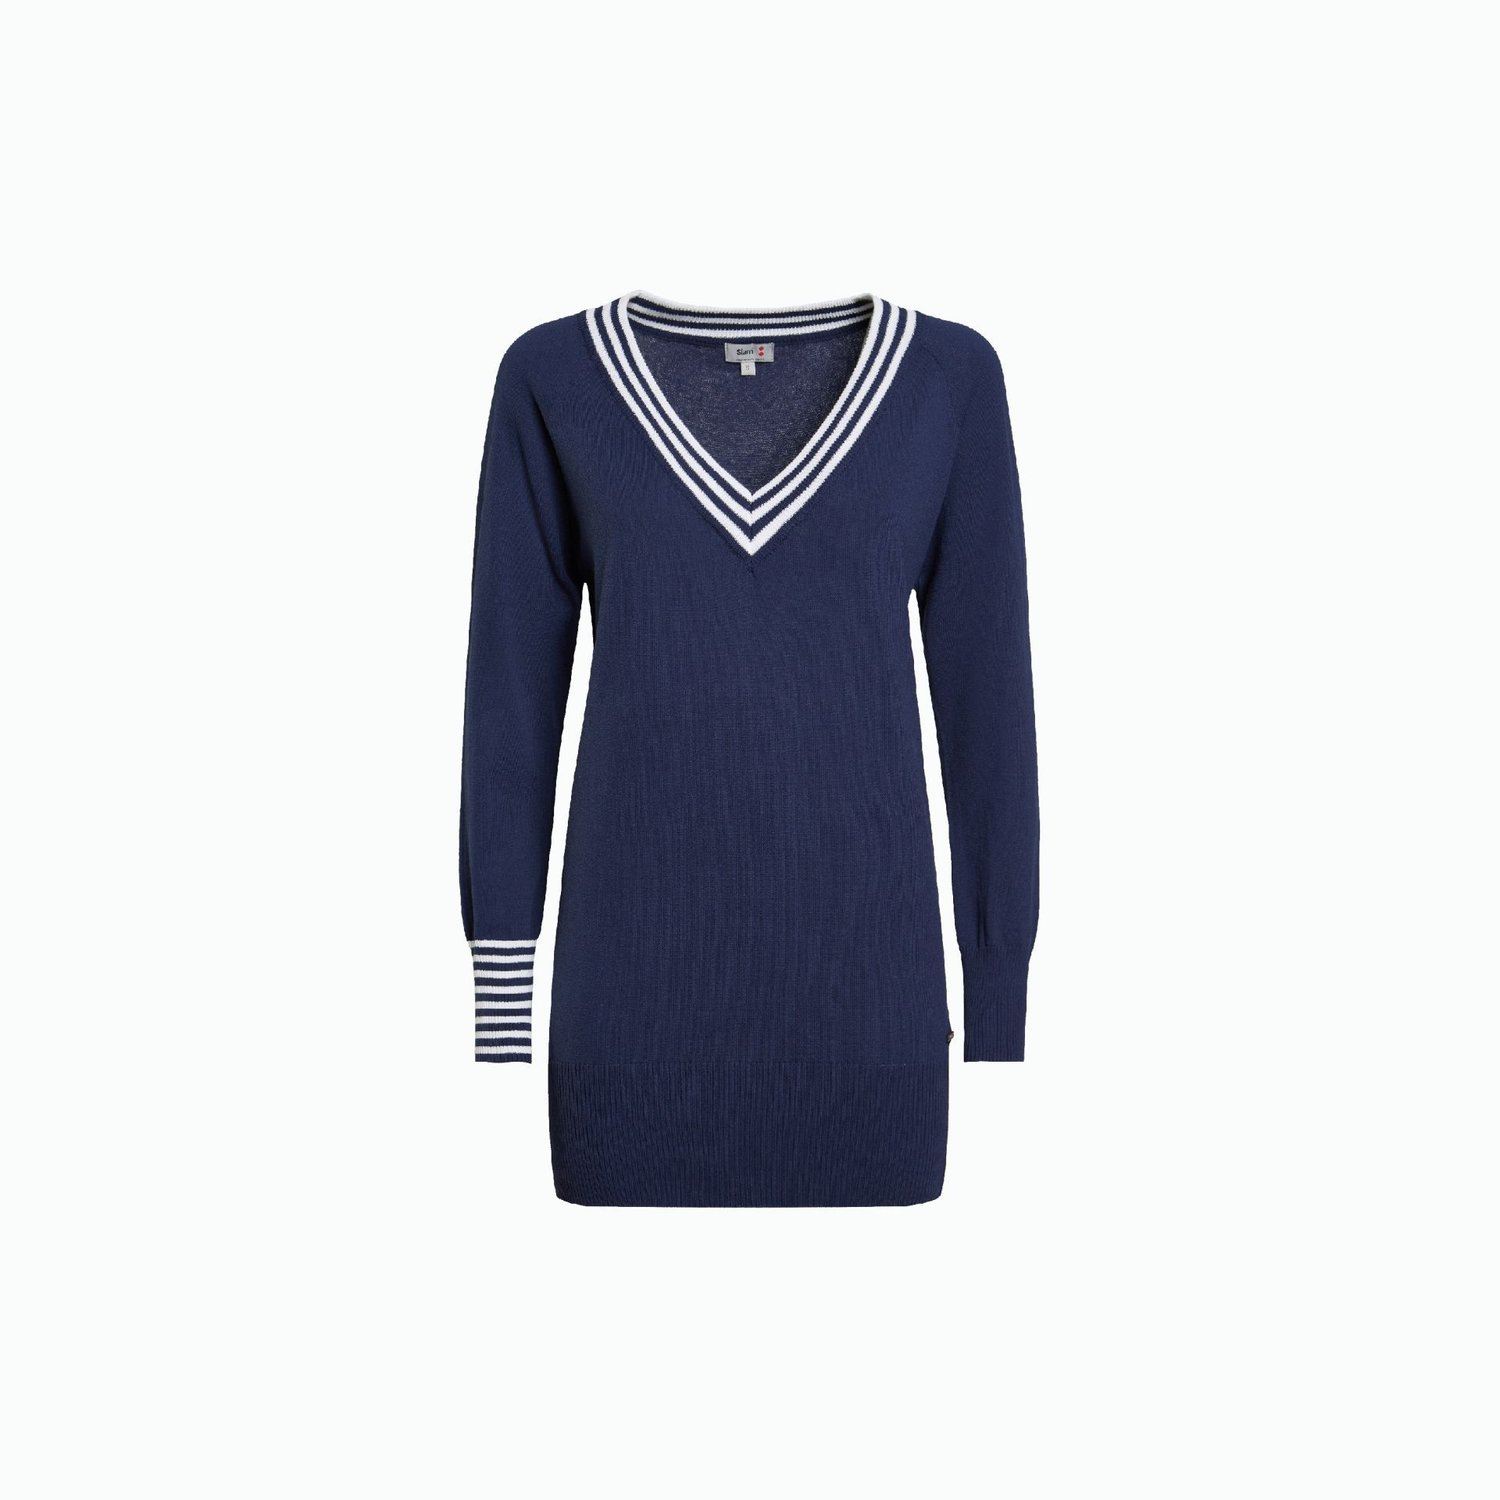 Jumper A182 - Navy